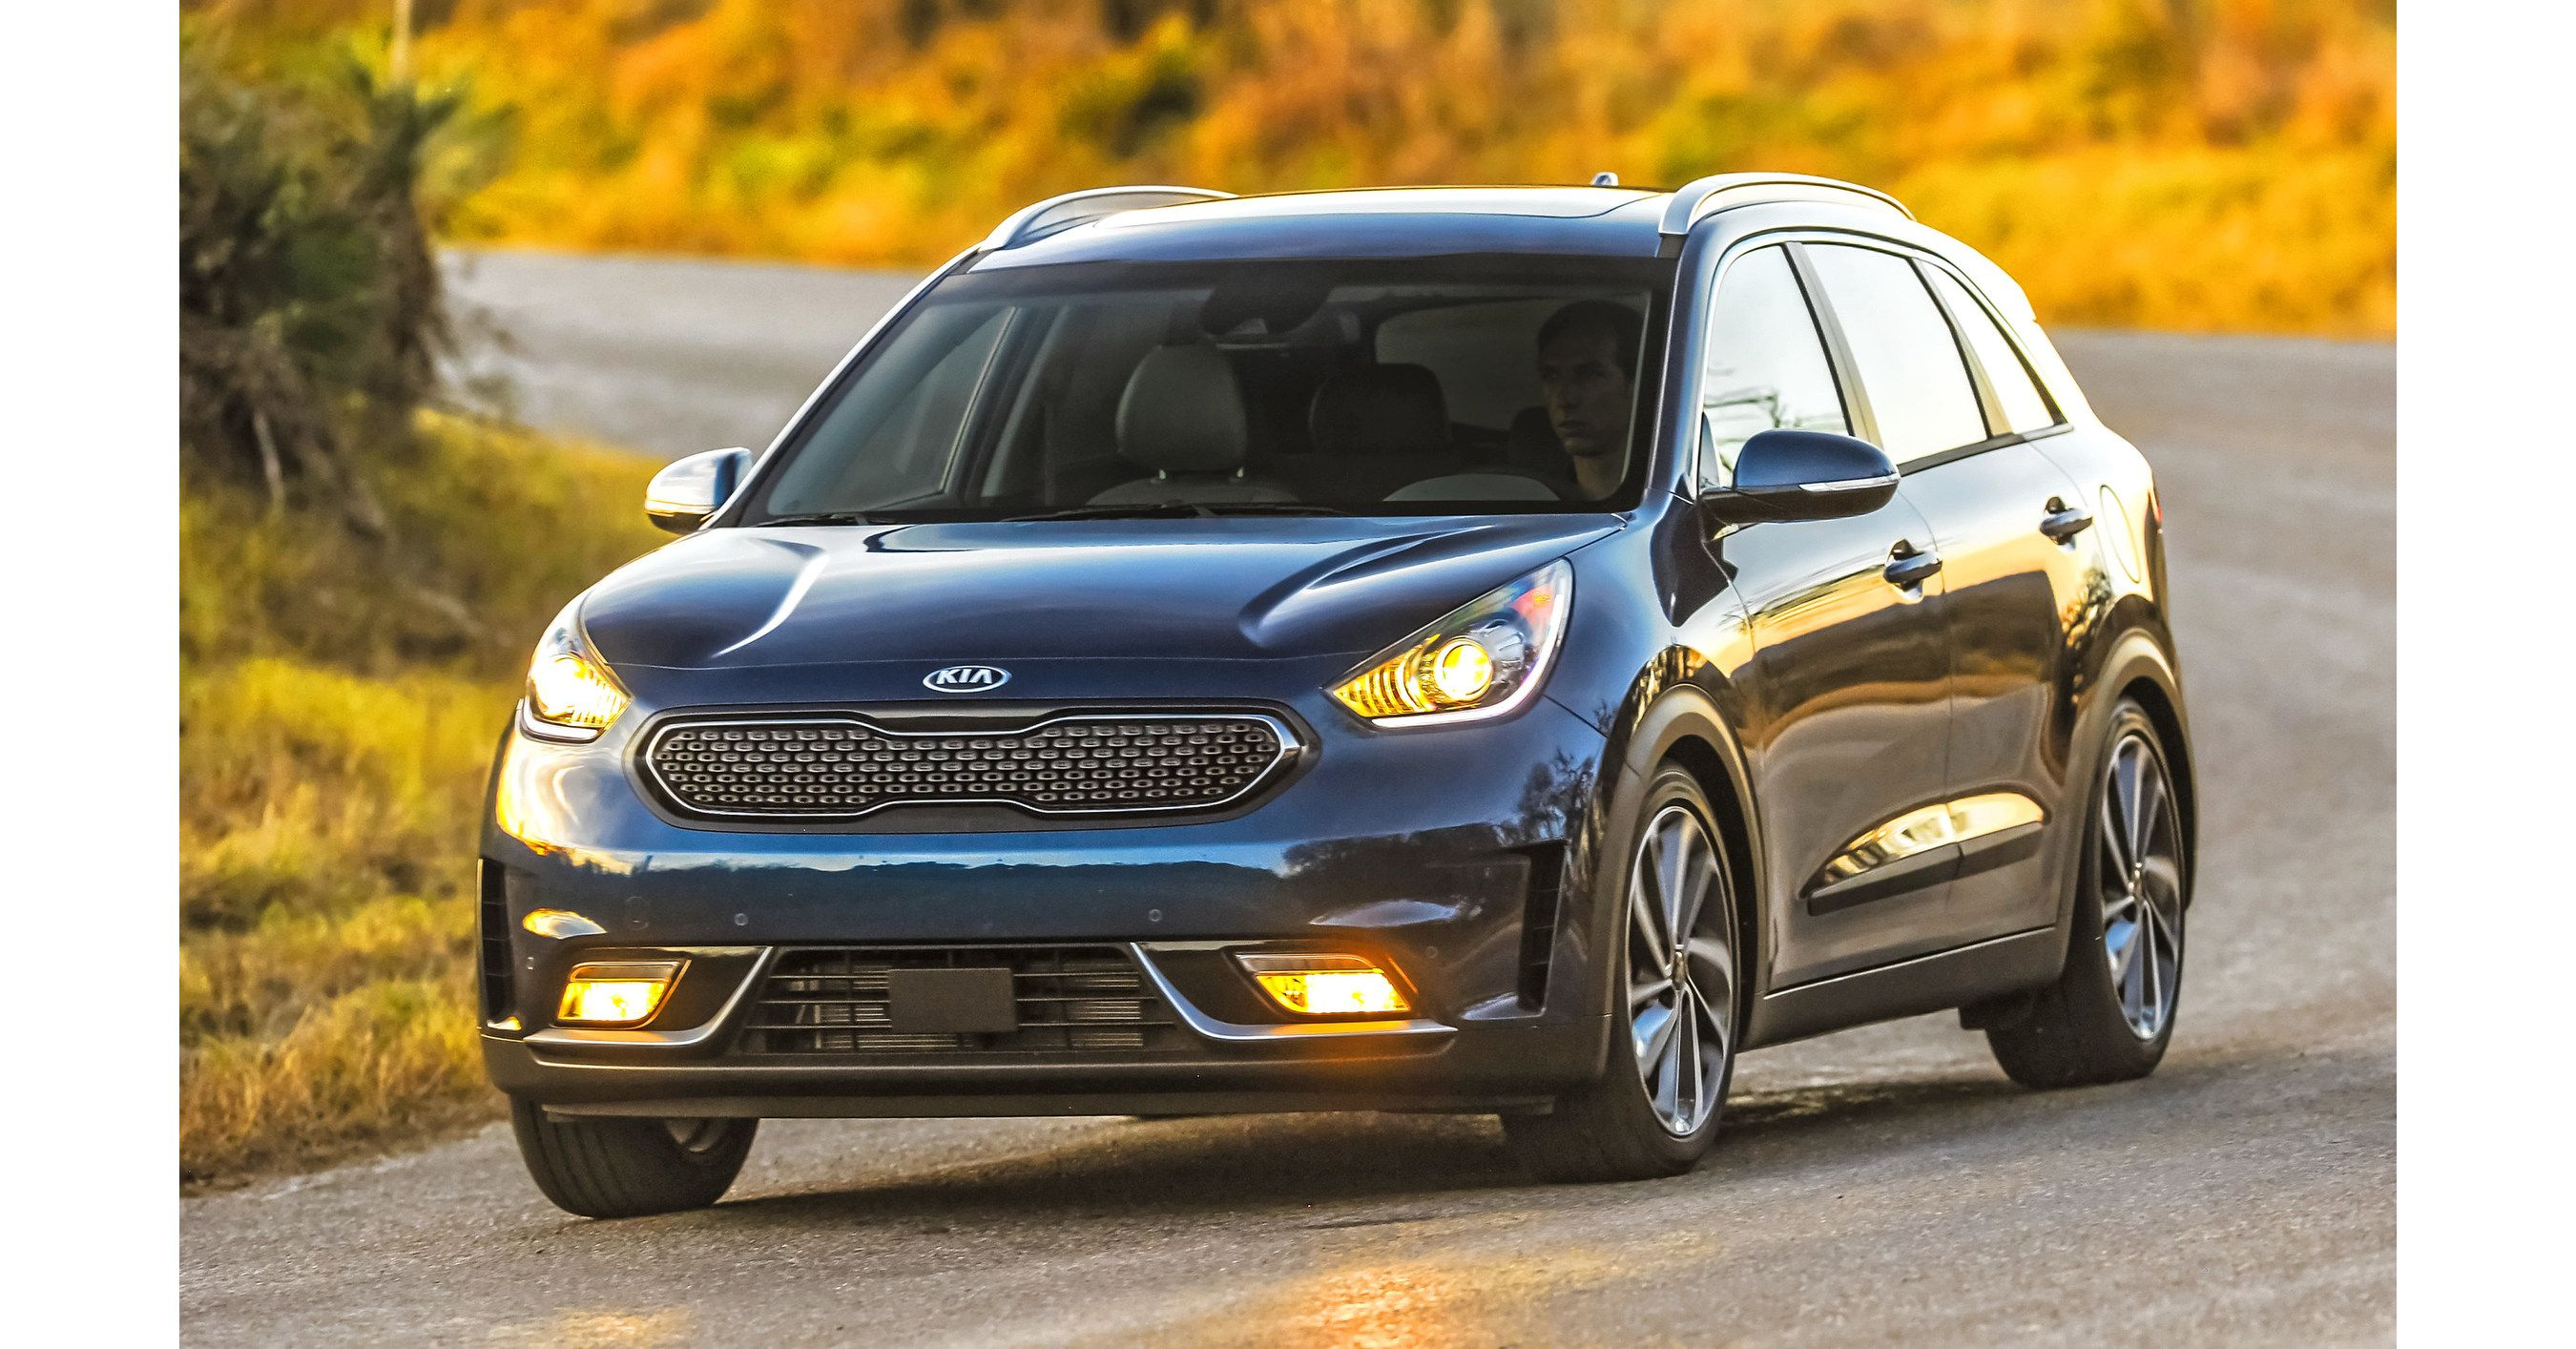 Color me curious the secrets behind the kia sportage colors - Learn The Secrets Behind The Kia Sportage Colors Http Kia Buzz Com Kia Sportage Colors Russ Darrow Pinterest The Secret Colors And The O Jays